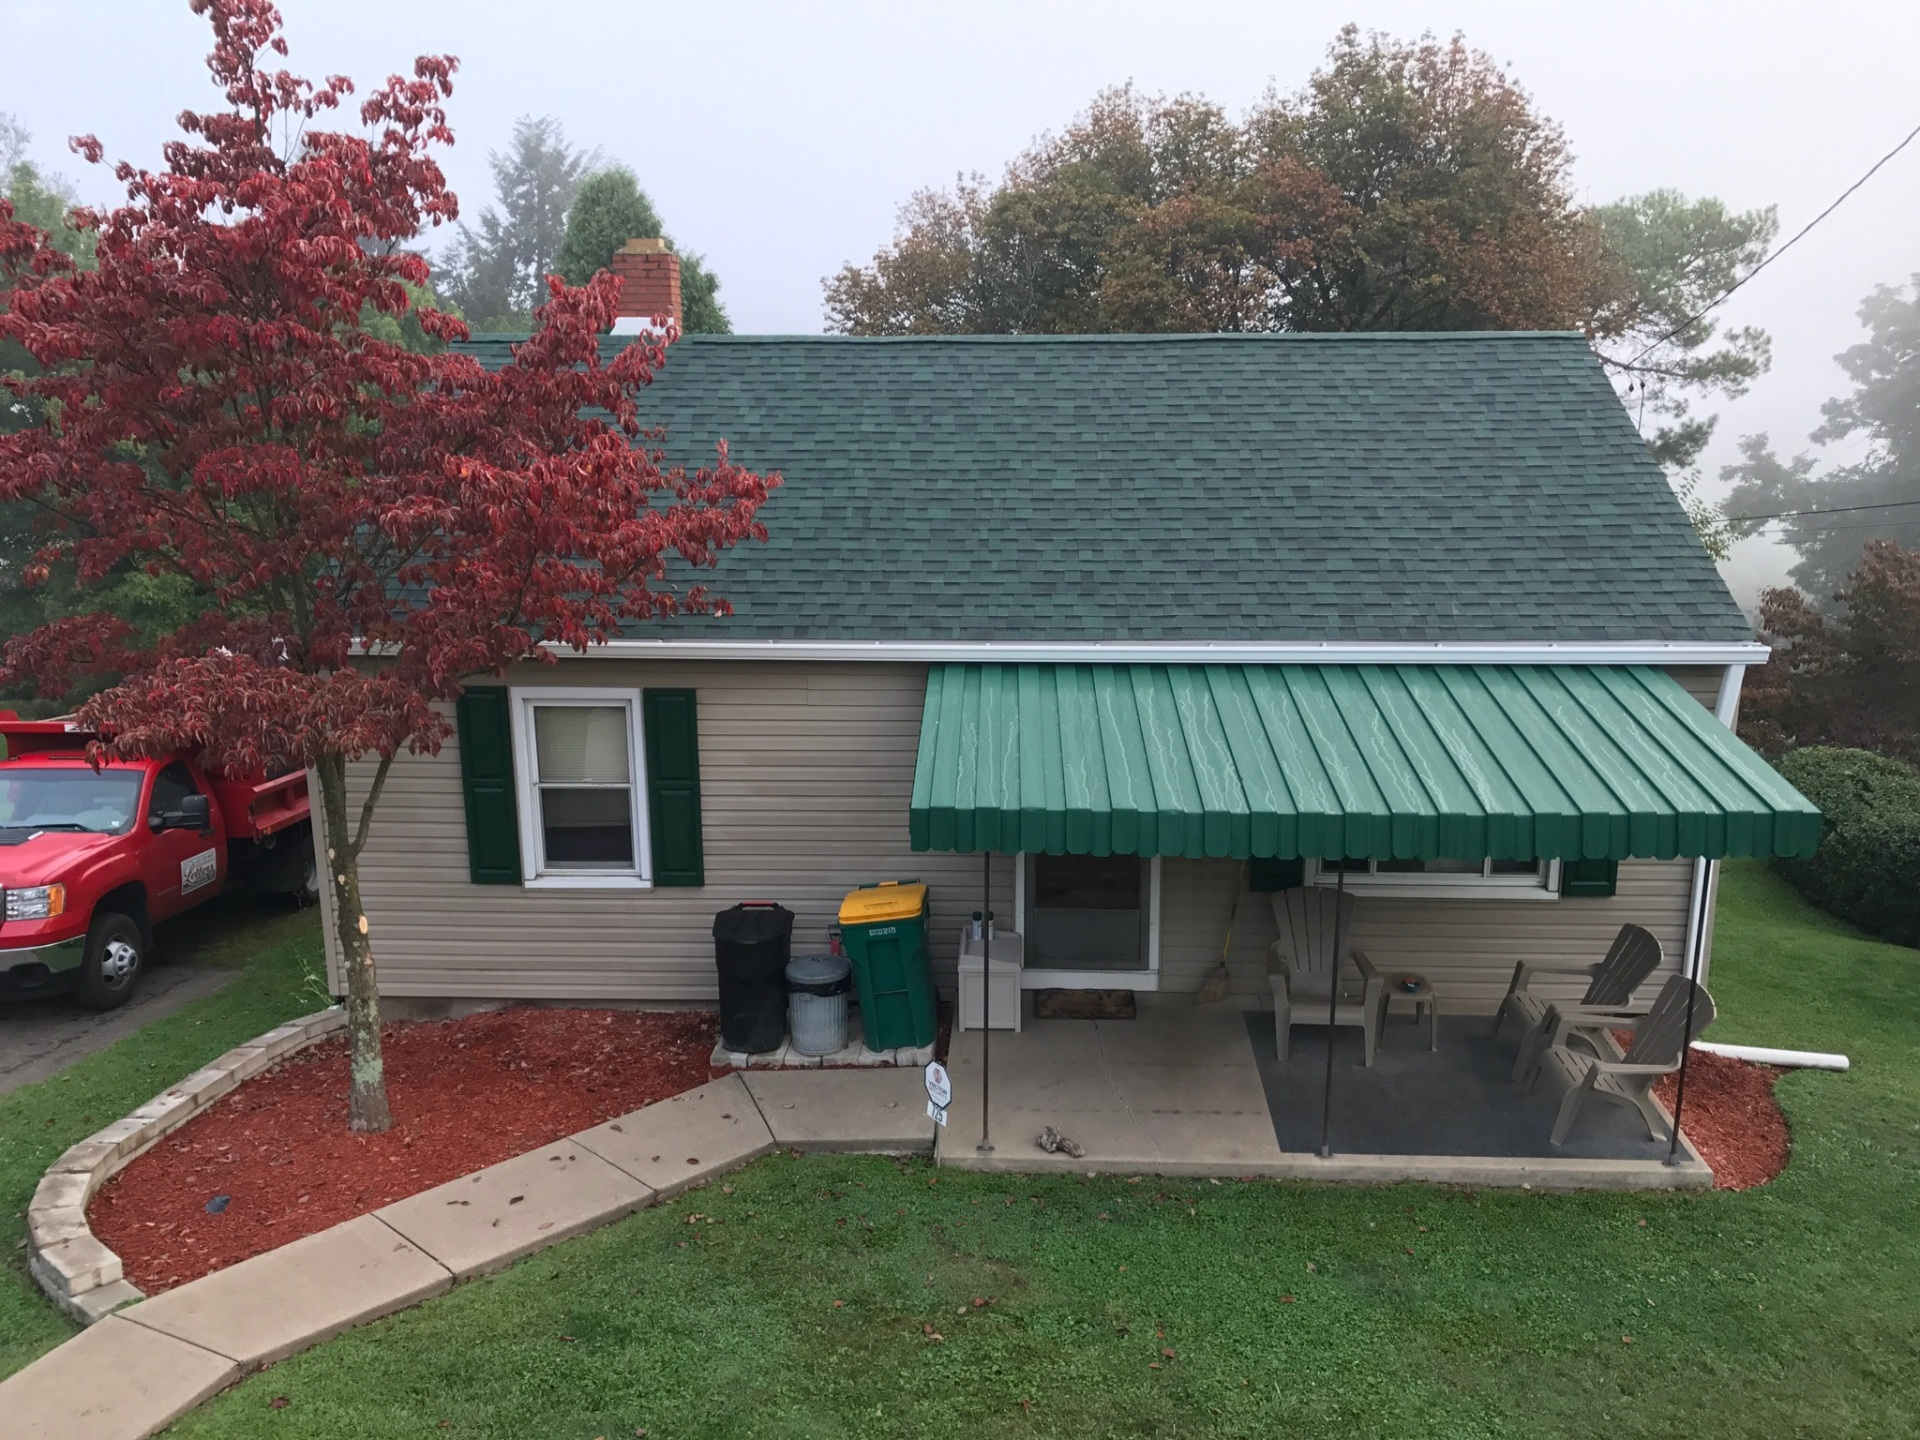 Owens Corning Duration Chateau Green